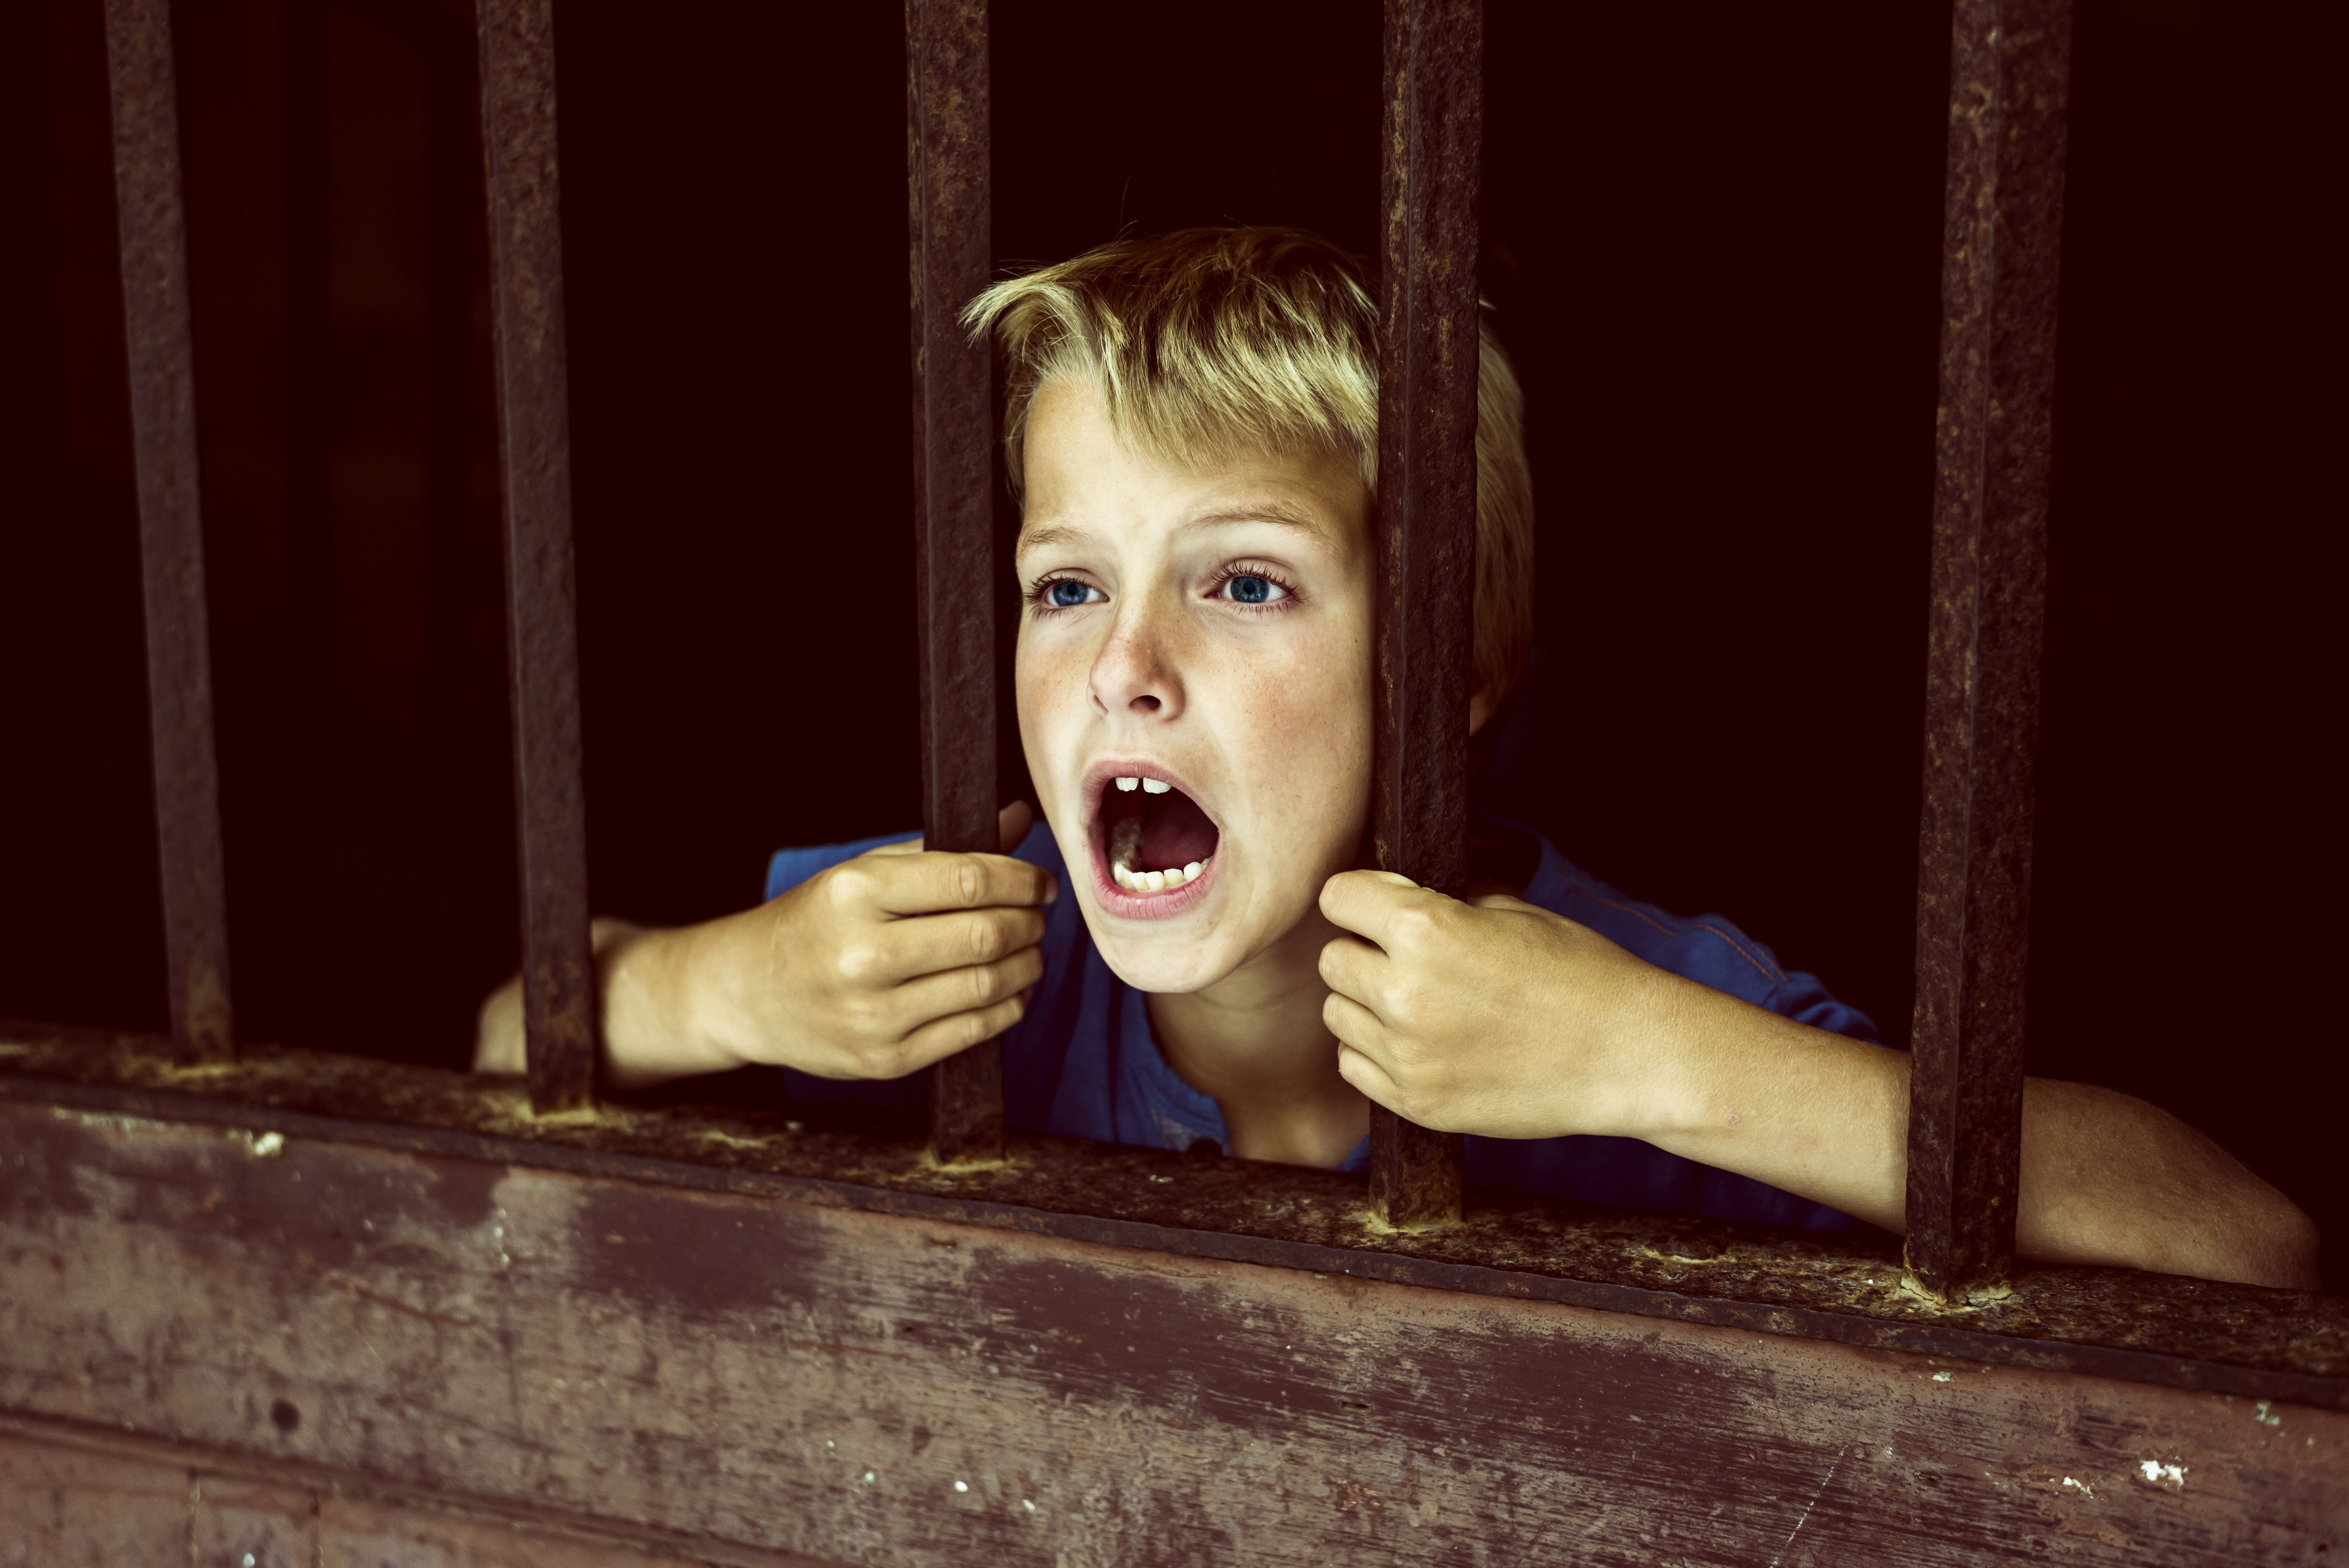 Adult Prison Is No Place For A Child